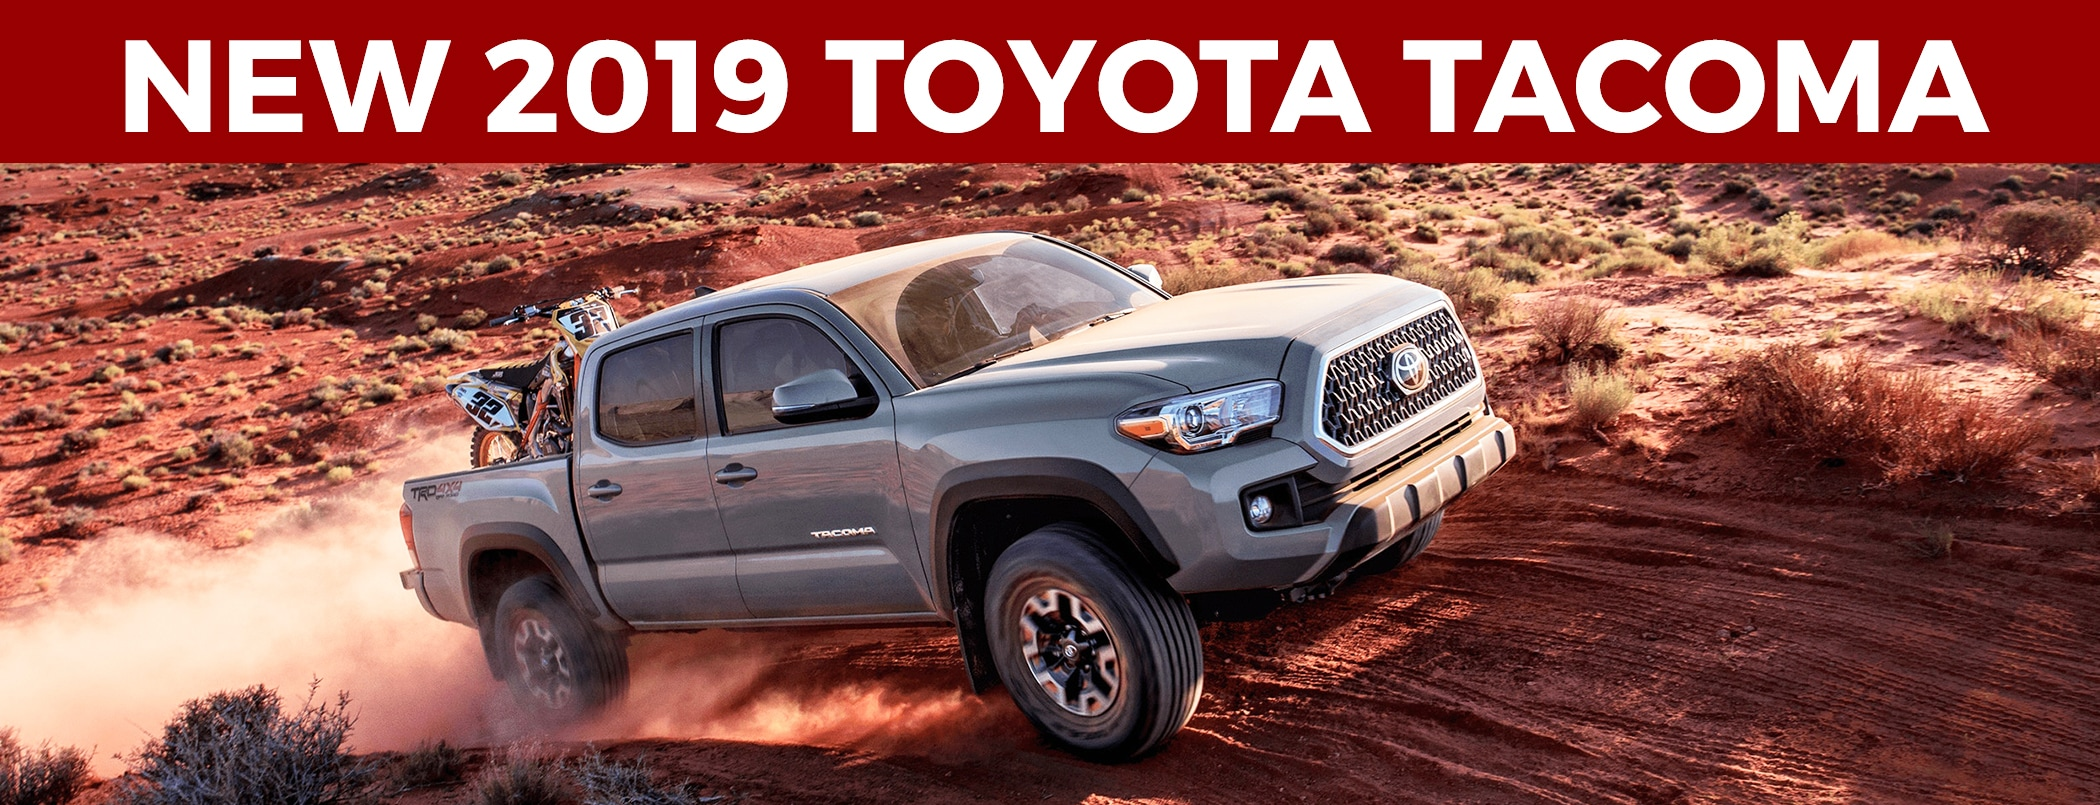 2019 Toyota Tacoma Review Murray